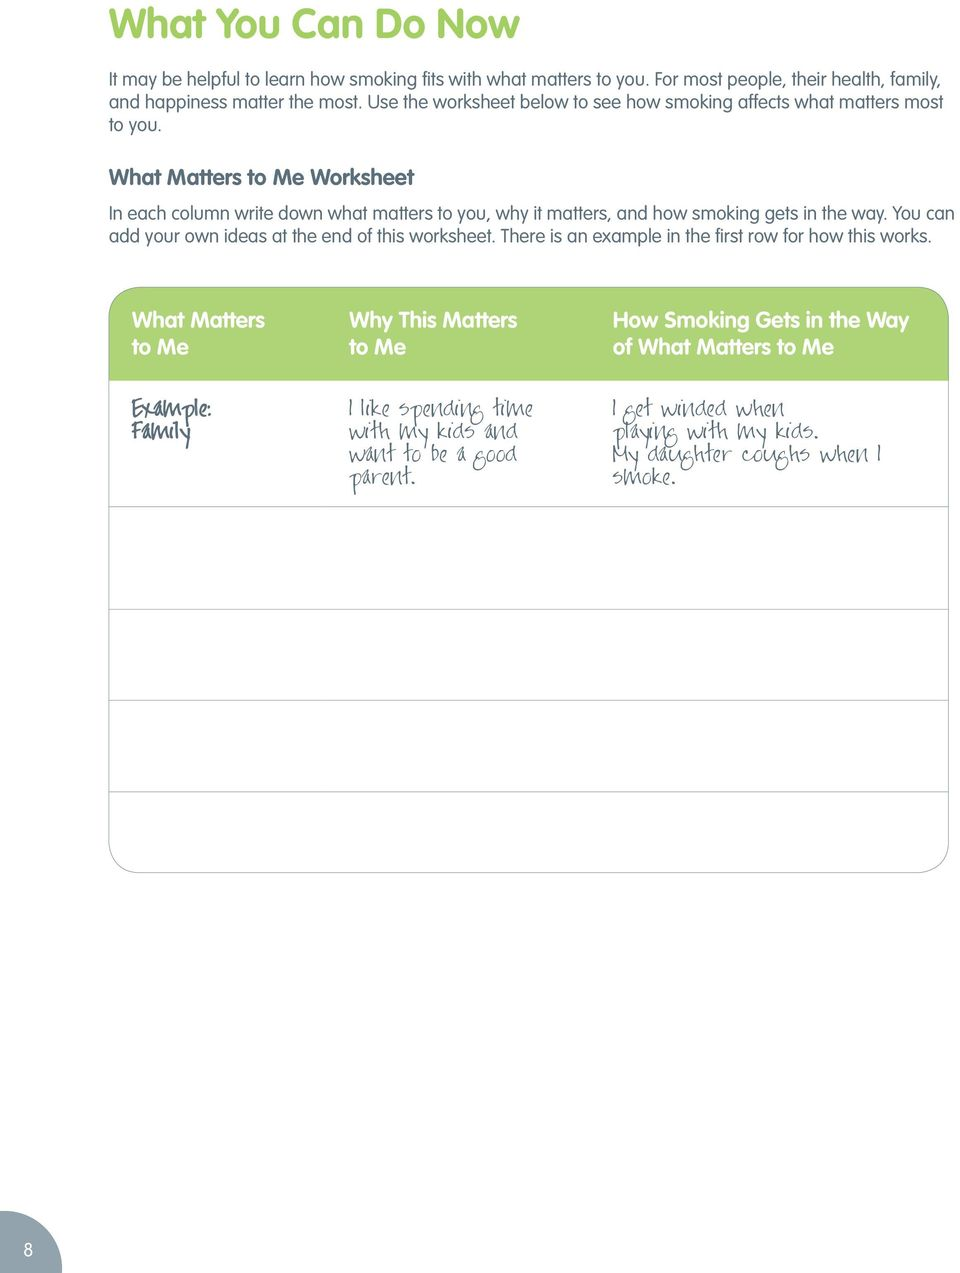 What Matters to Me Worksheet In each column write down what matters to you, why it matters, and how smoking gets in the way. You can add your own ideas at the end of this worksheet.